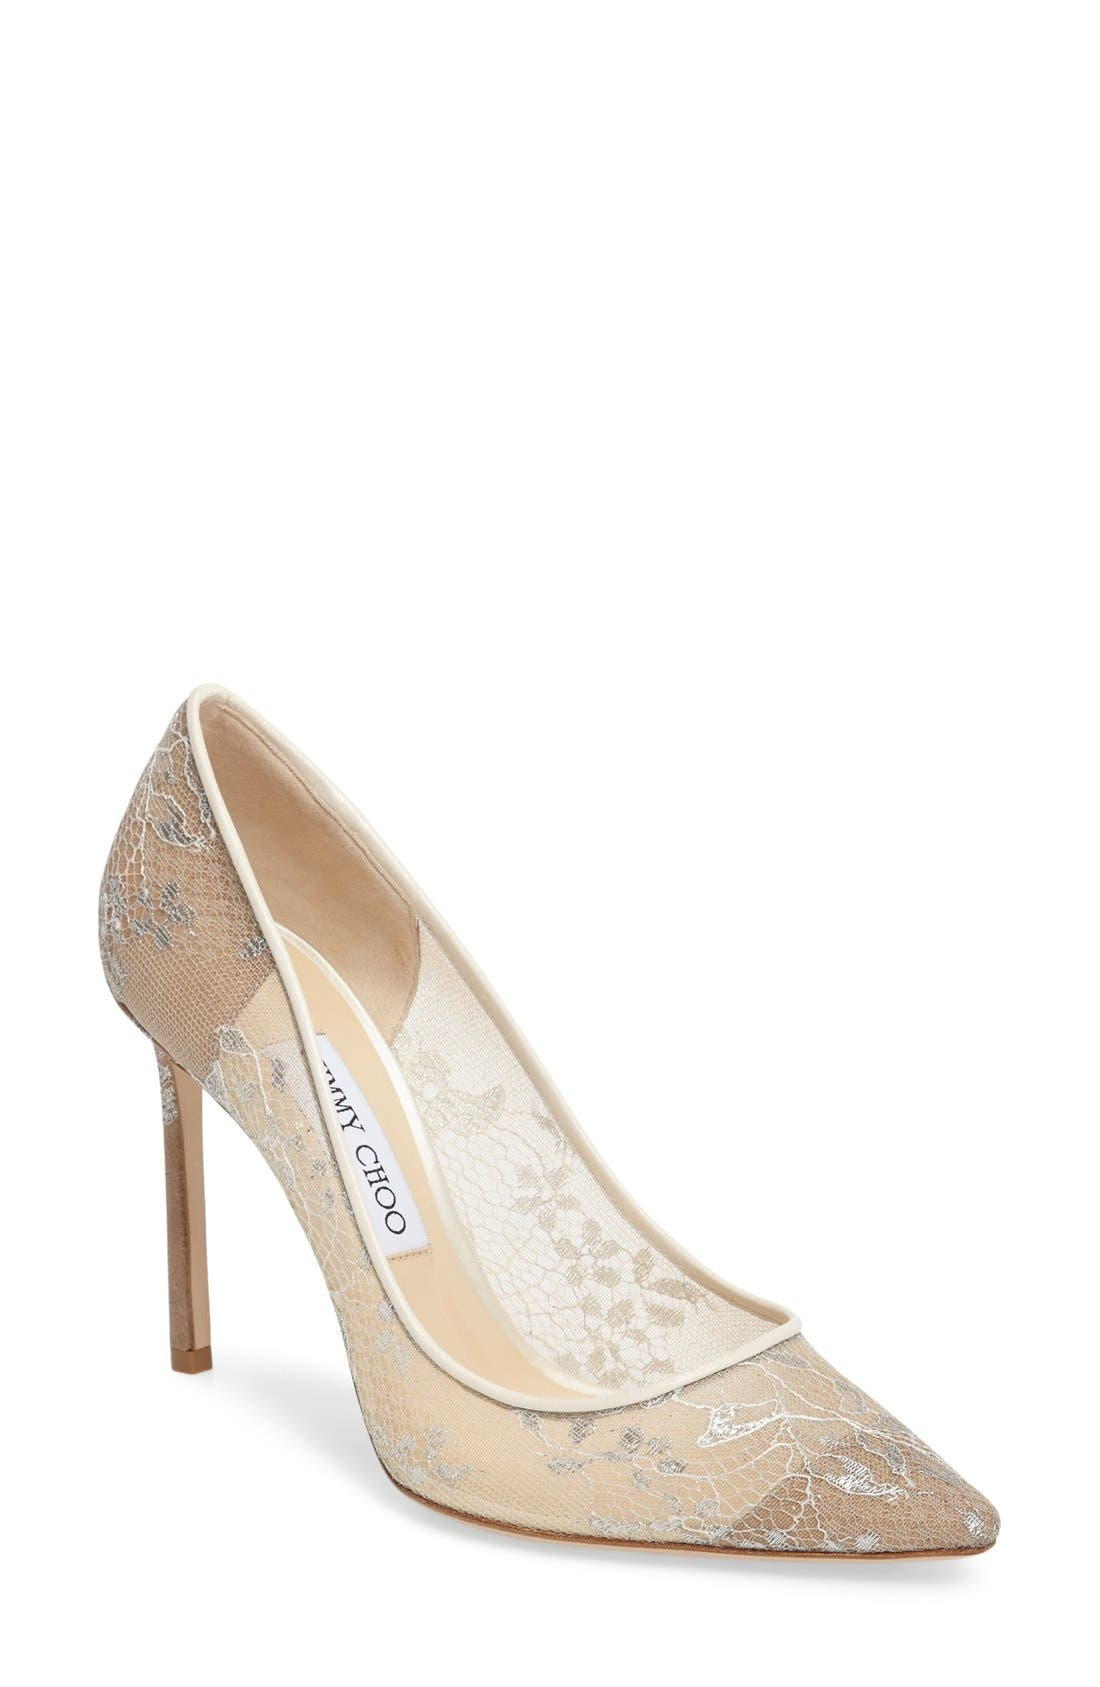 Alternate Image 1 Selected - Jimmy Choo 'Romy' Lace Pump (Women)